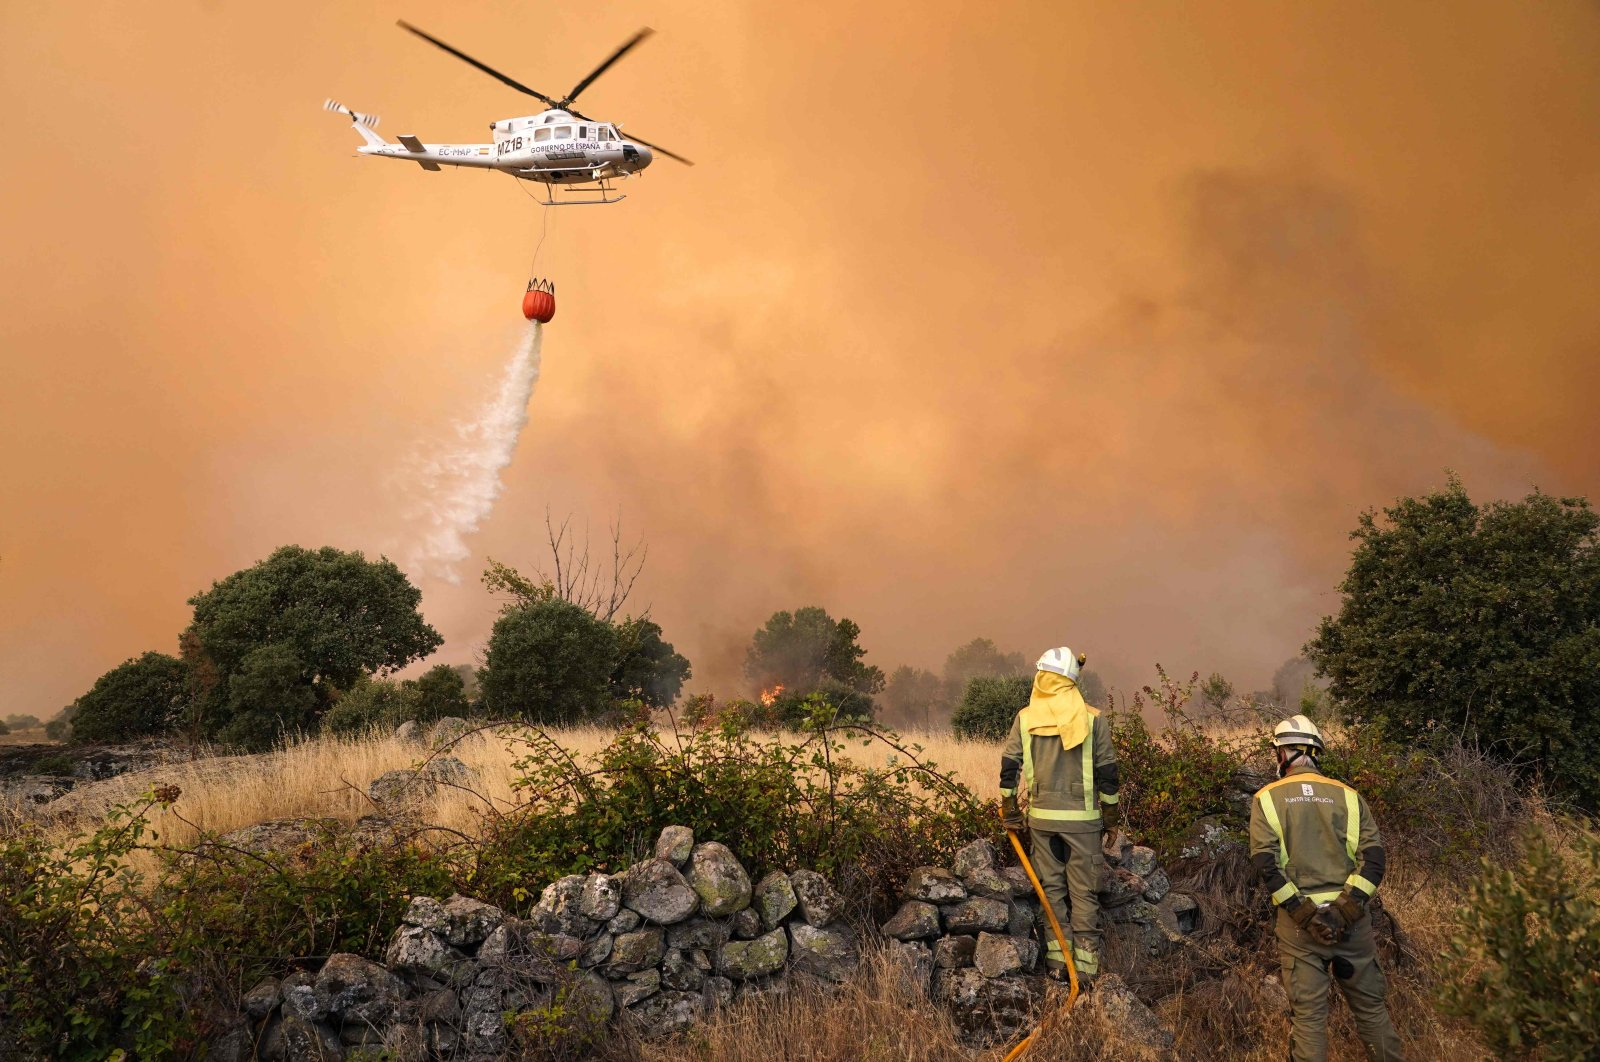 A helicopter drops water as fires rage in Navalmoral de la Sierra near Avila at the center of Spain on Aug. 16, 2021. (AFP Photo)